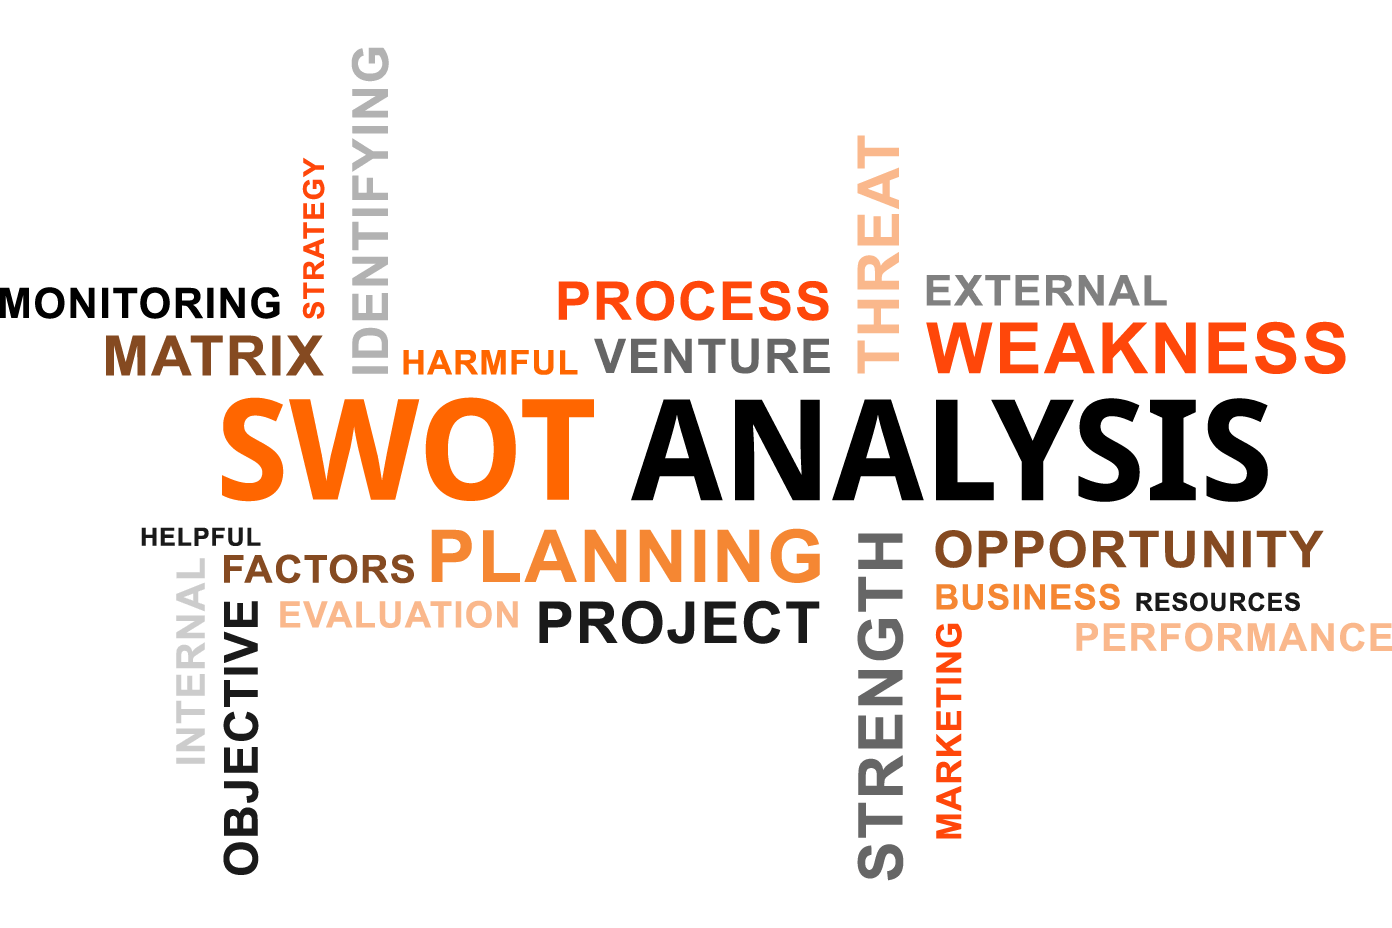 Clipart definition situational analysis. The structure of a